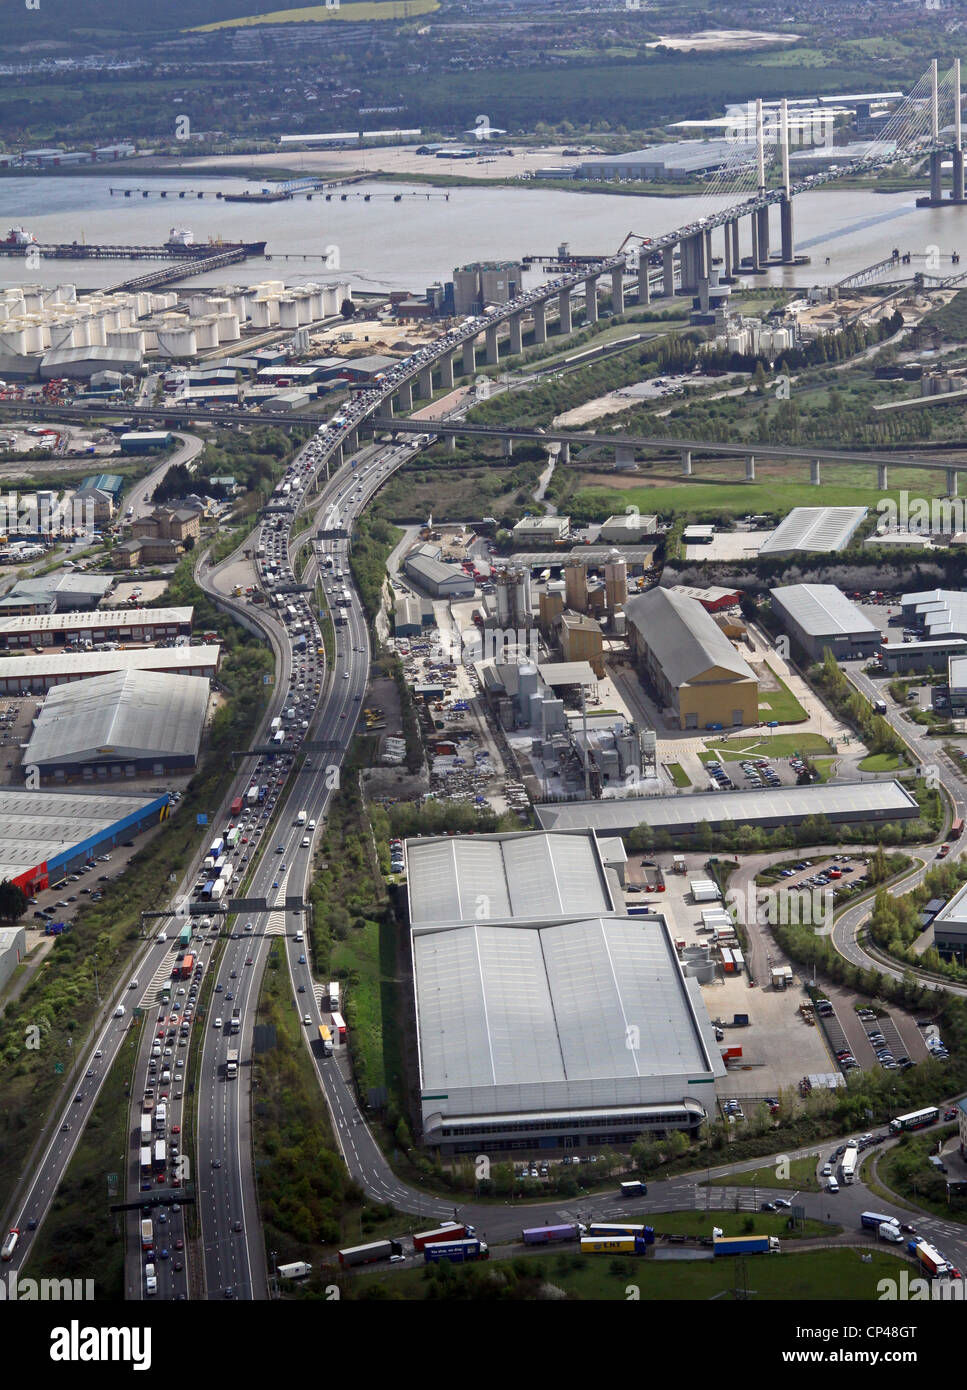 Aerial view of the M25 heading south towards the Dartford Crossing and QE2 Bridge with heavy traffic - Stock Image